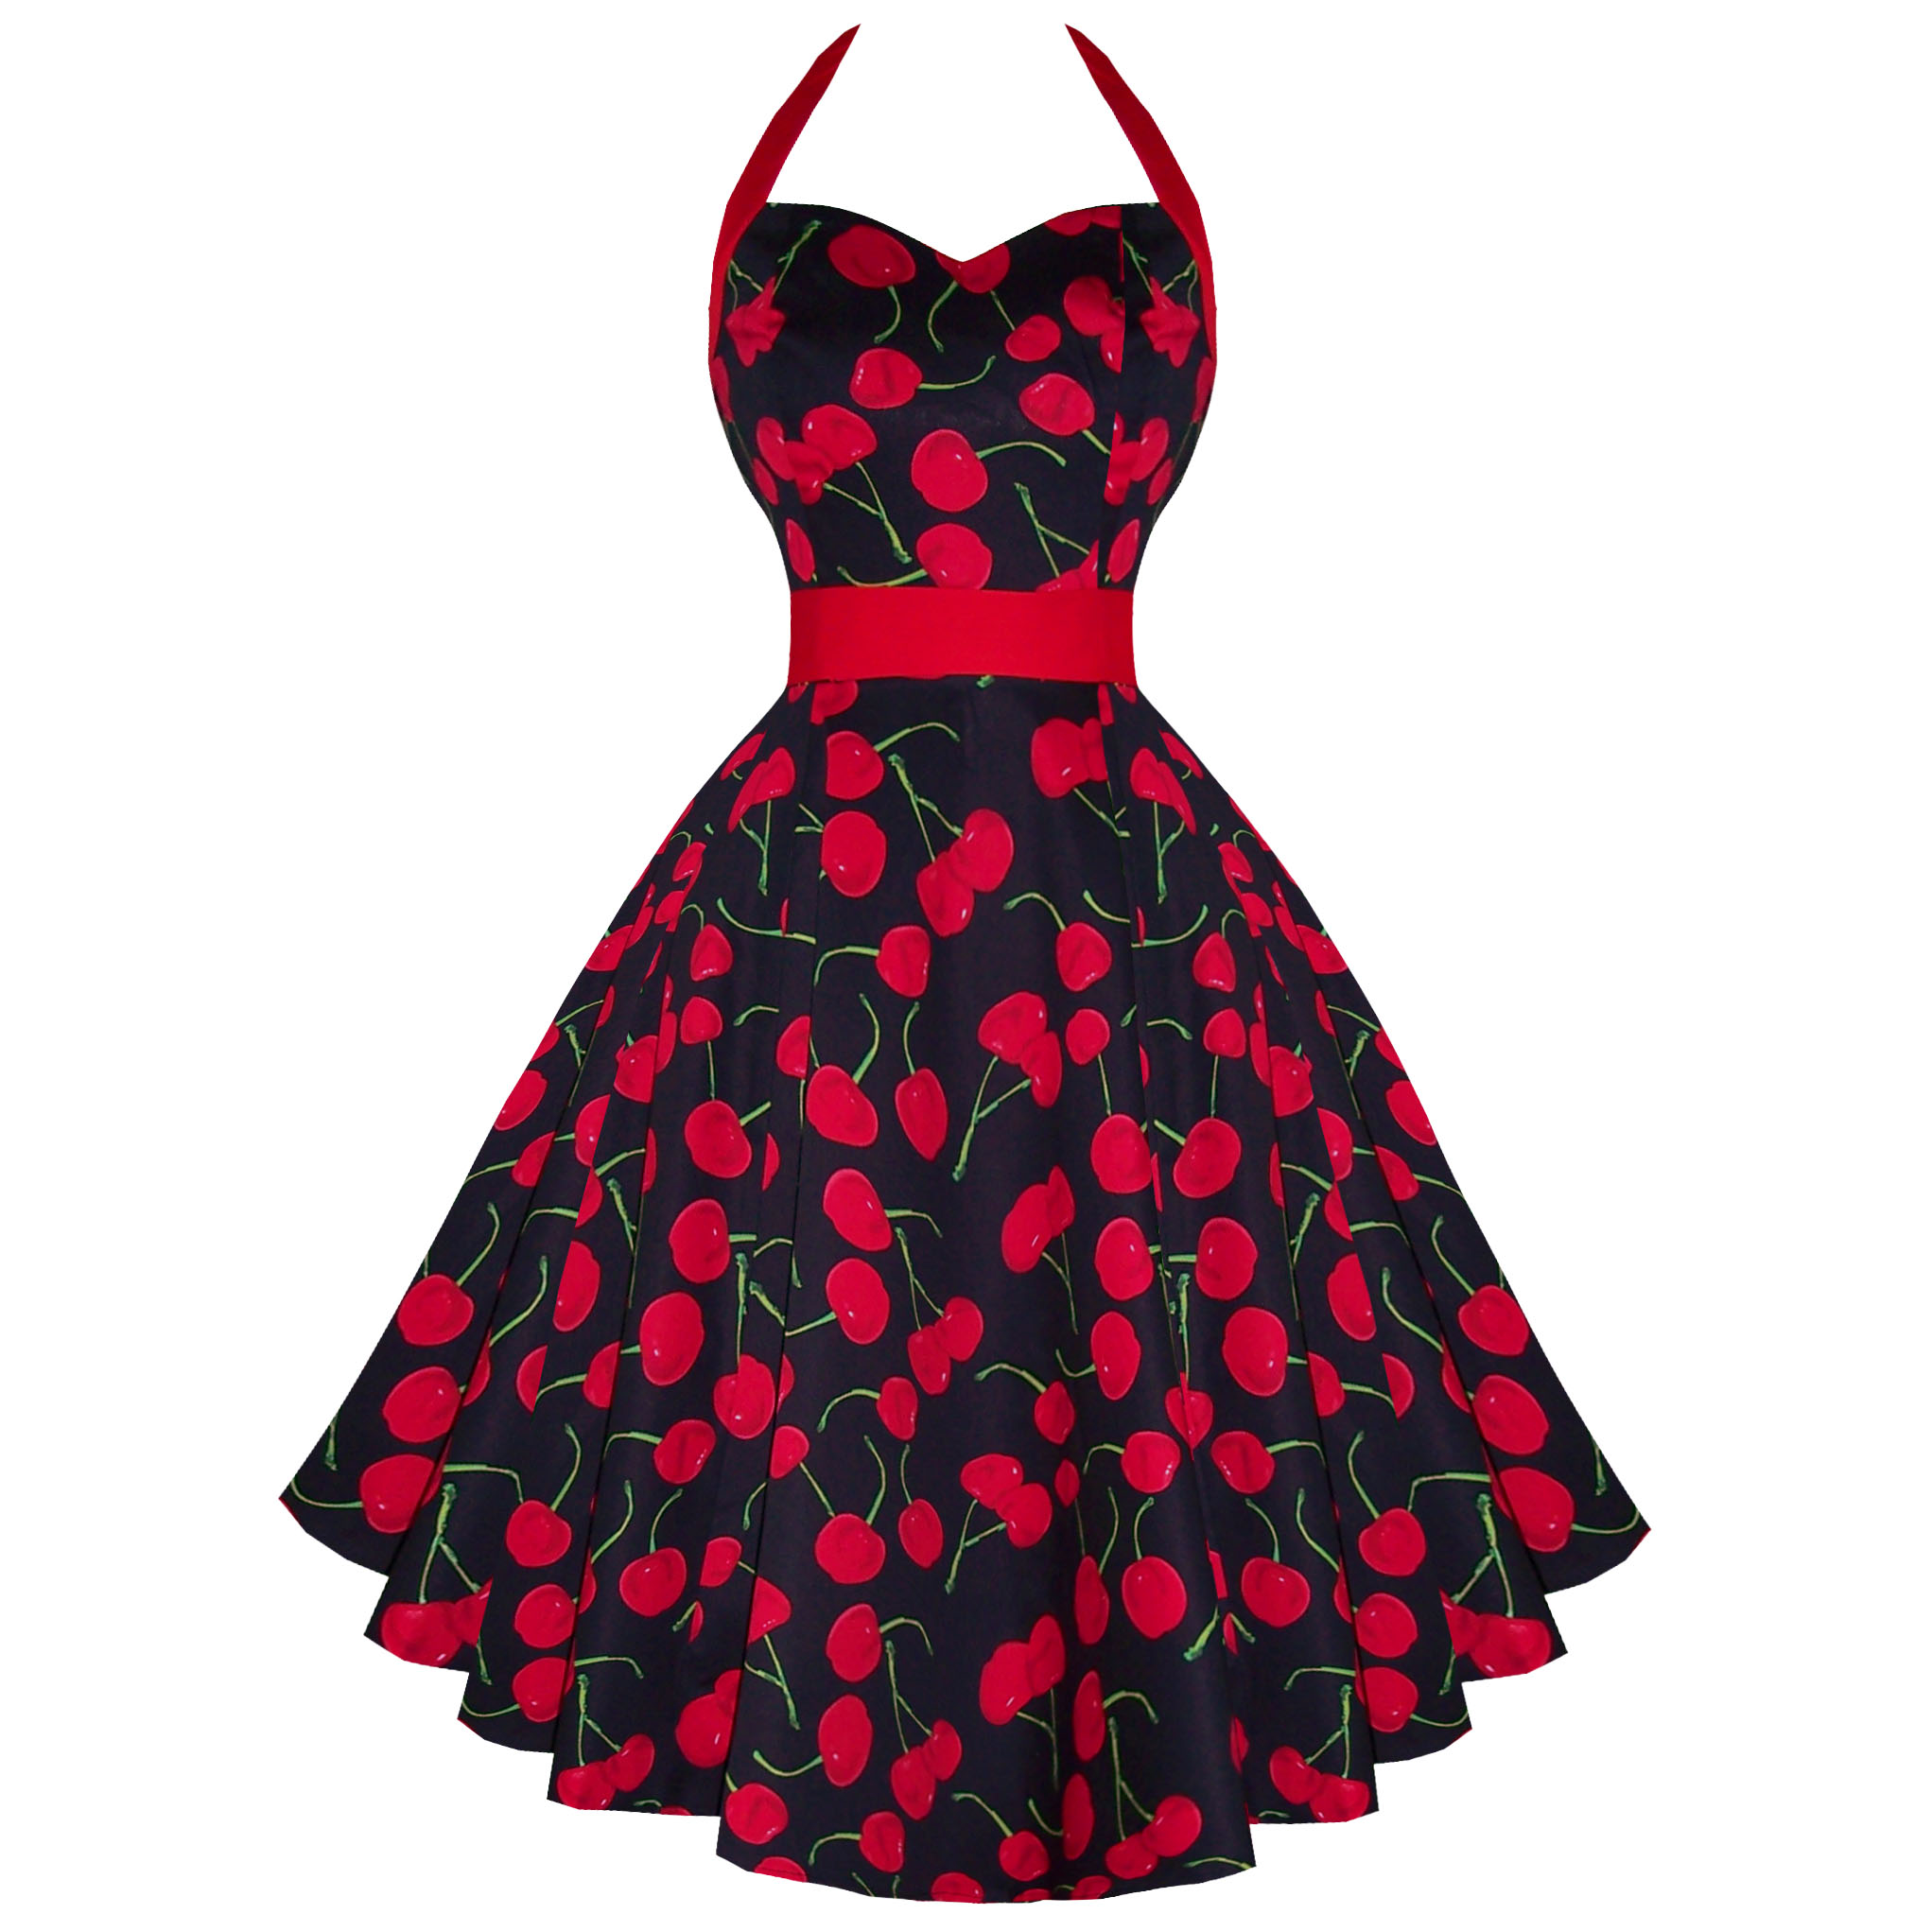 RKH57 Hearts & Roses Cherry Rockabilly Dress Pin Up Vintage 50s Party Prom Swing